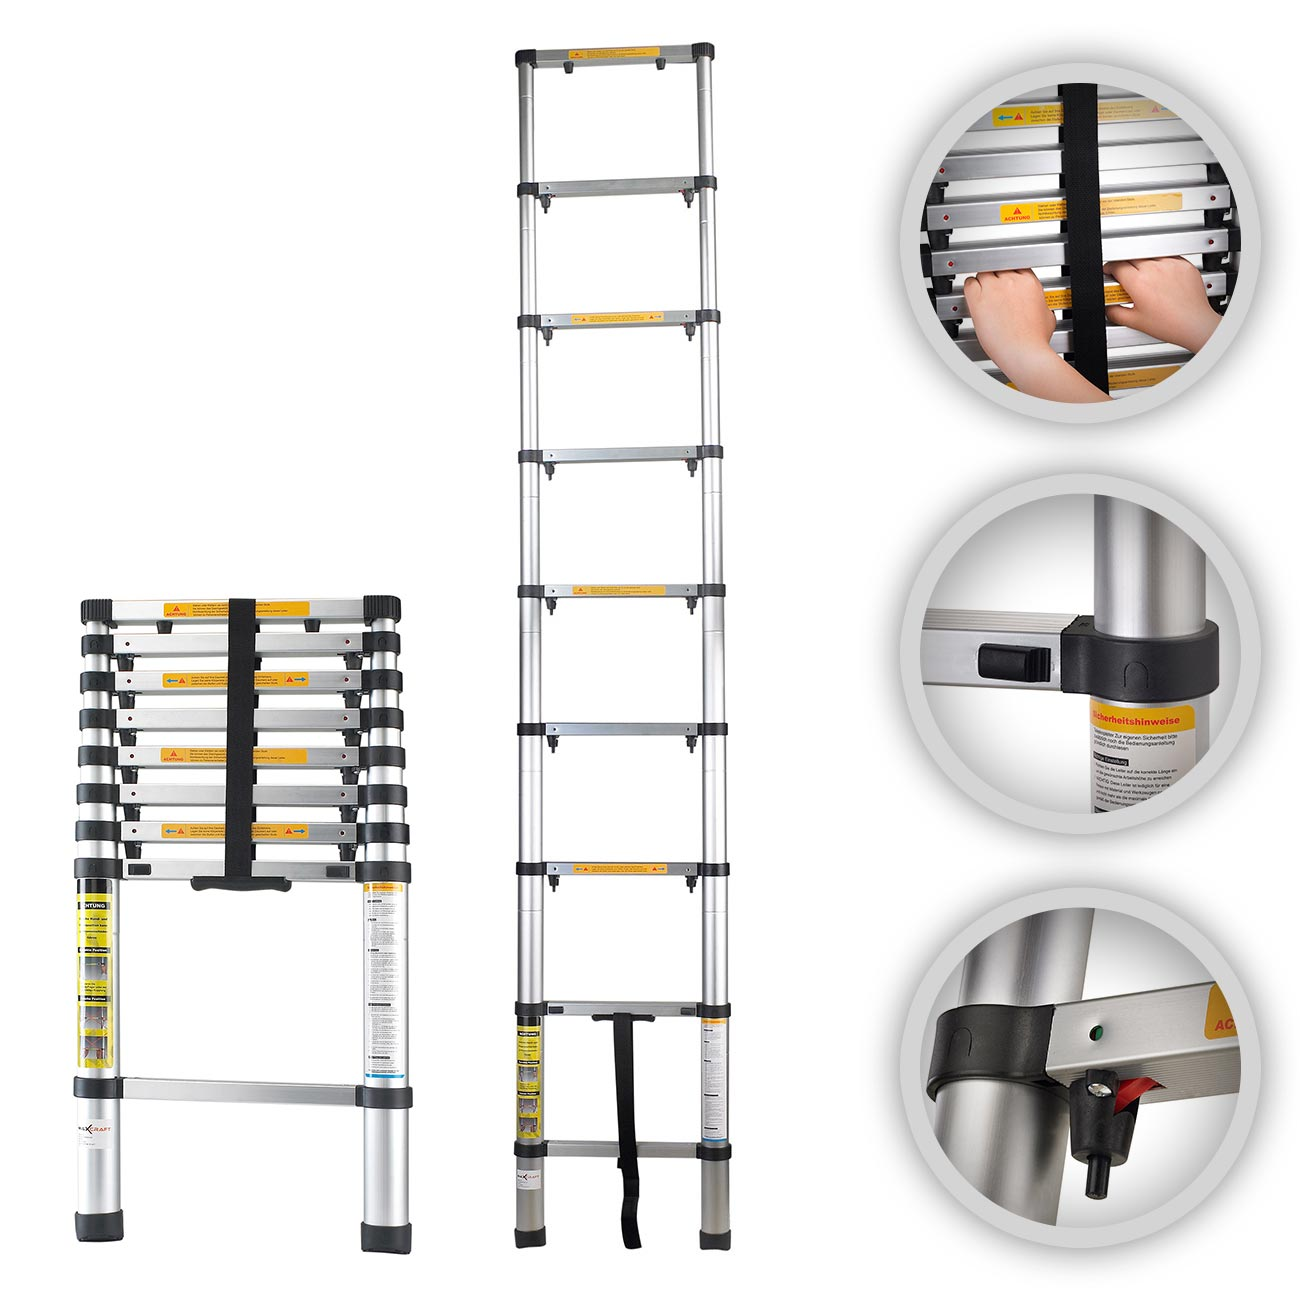 maxcraft 2 60 m telescopic aluminium ladder with finger protection spacers diy telecopic ladders. Black Bedroom Furniture Sets. Home Design Ideas